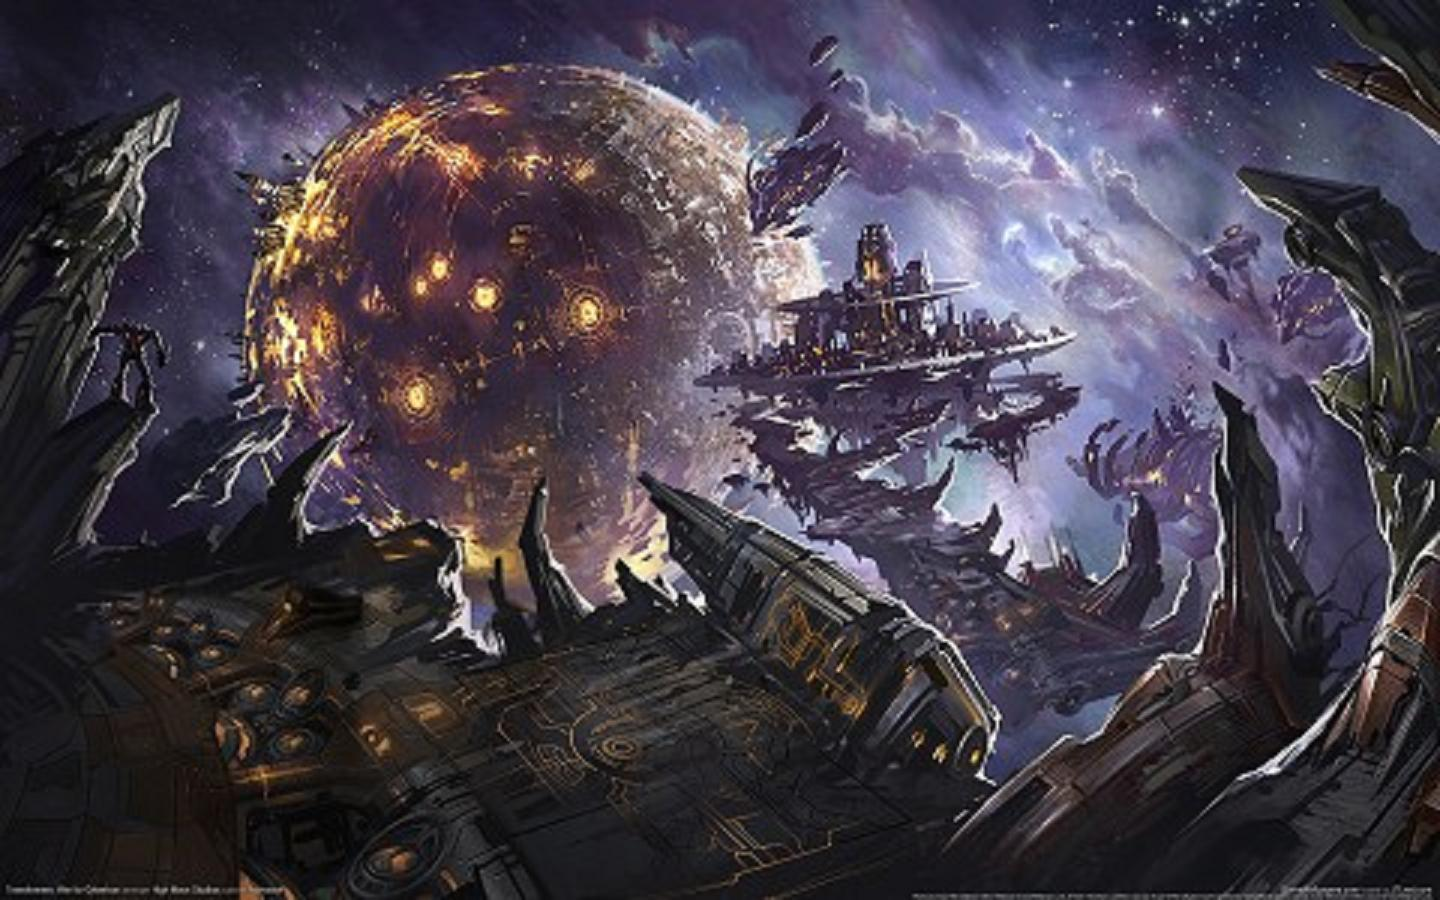 Transformers Fall Of Cybertron Wallpaper Transformers Matrix Wallpapers Cybertron Hd